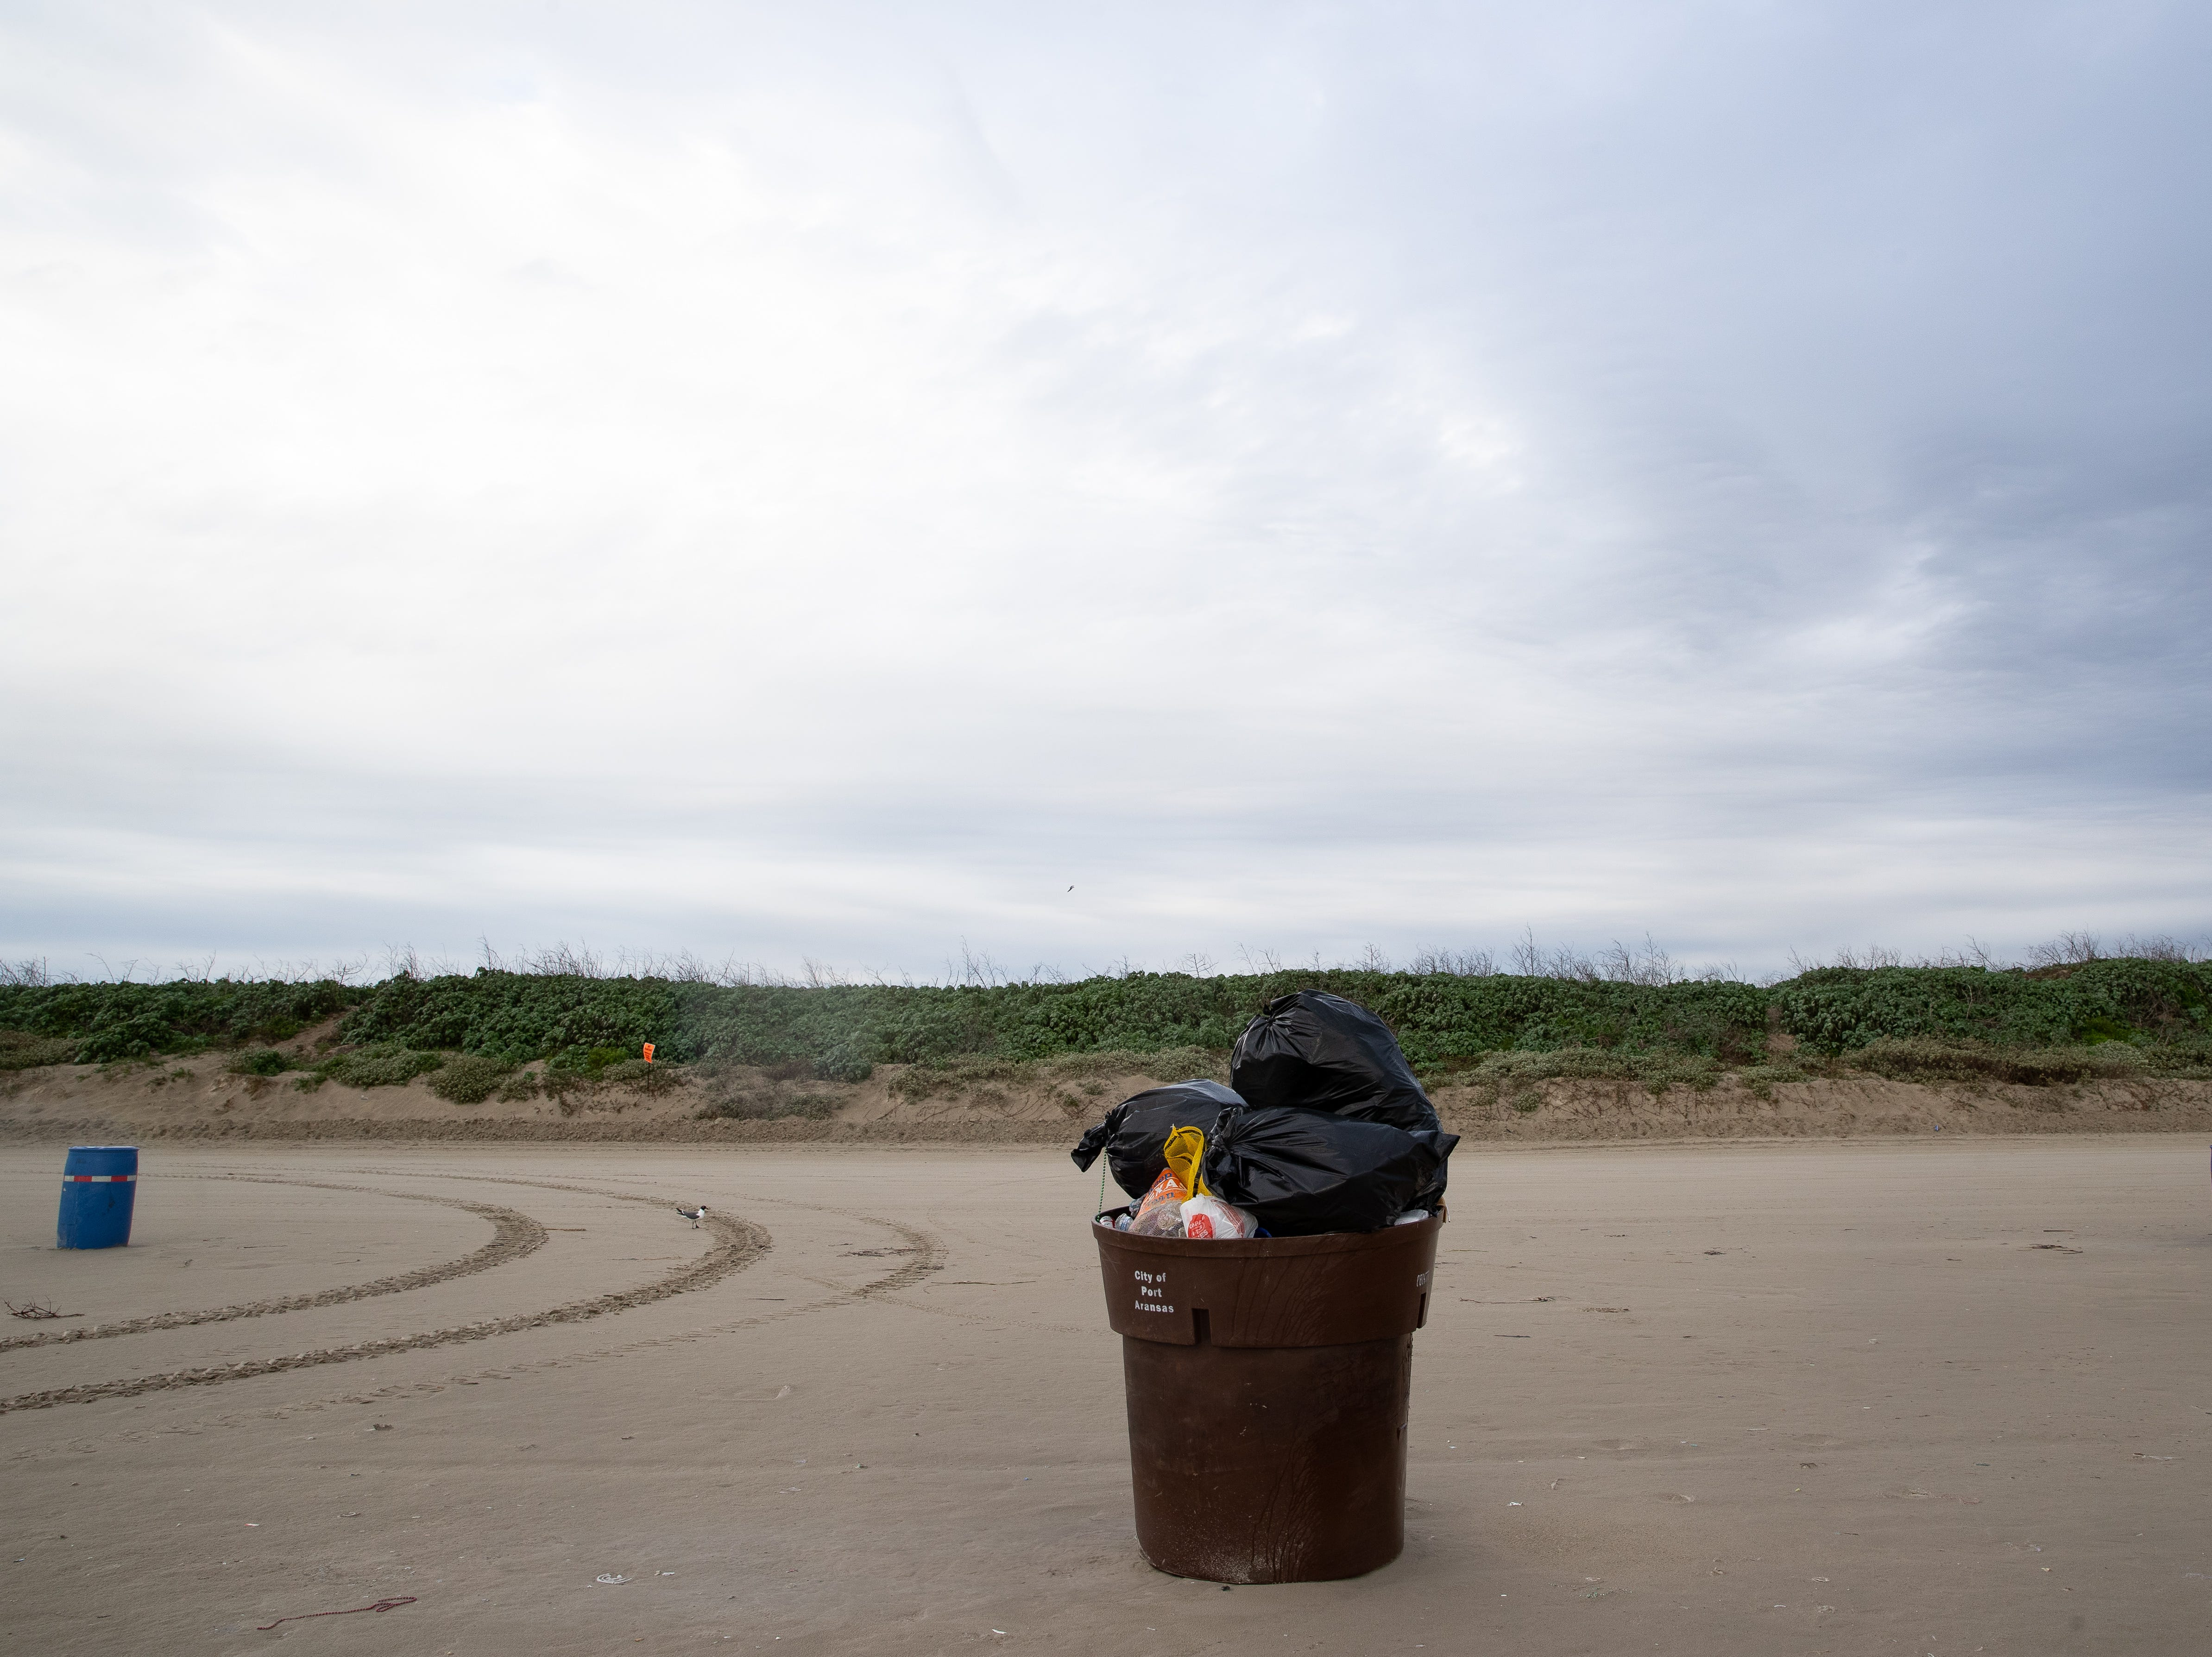 A over flowing trash container sits on the beach in Port Aransas in the early morning during the week of spring break on Friday, March 15, 2019.